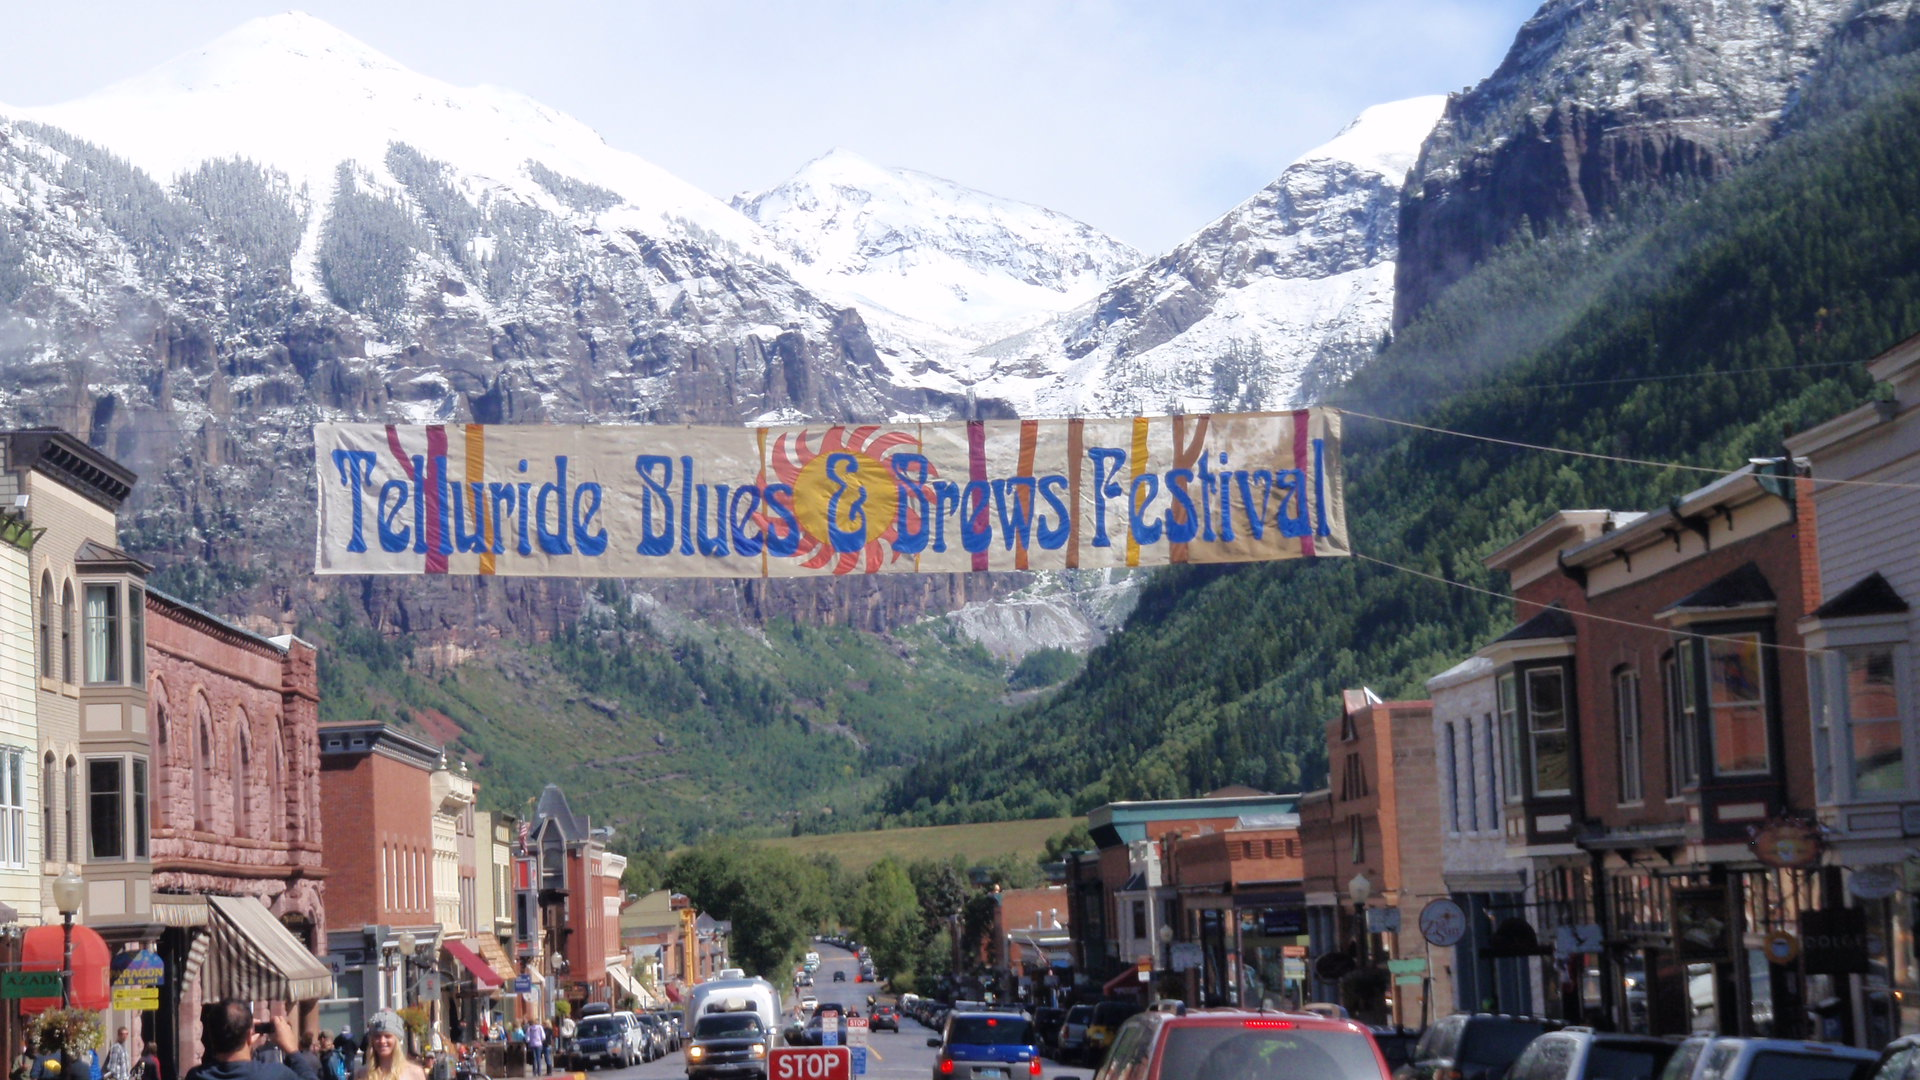 Phil Lesh & Friends, Gov't Mule and the B-52s Headline Telluride Blues & Brews Festival